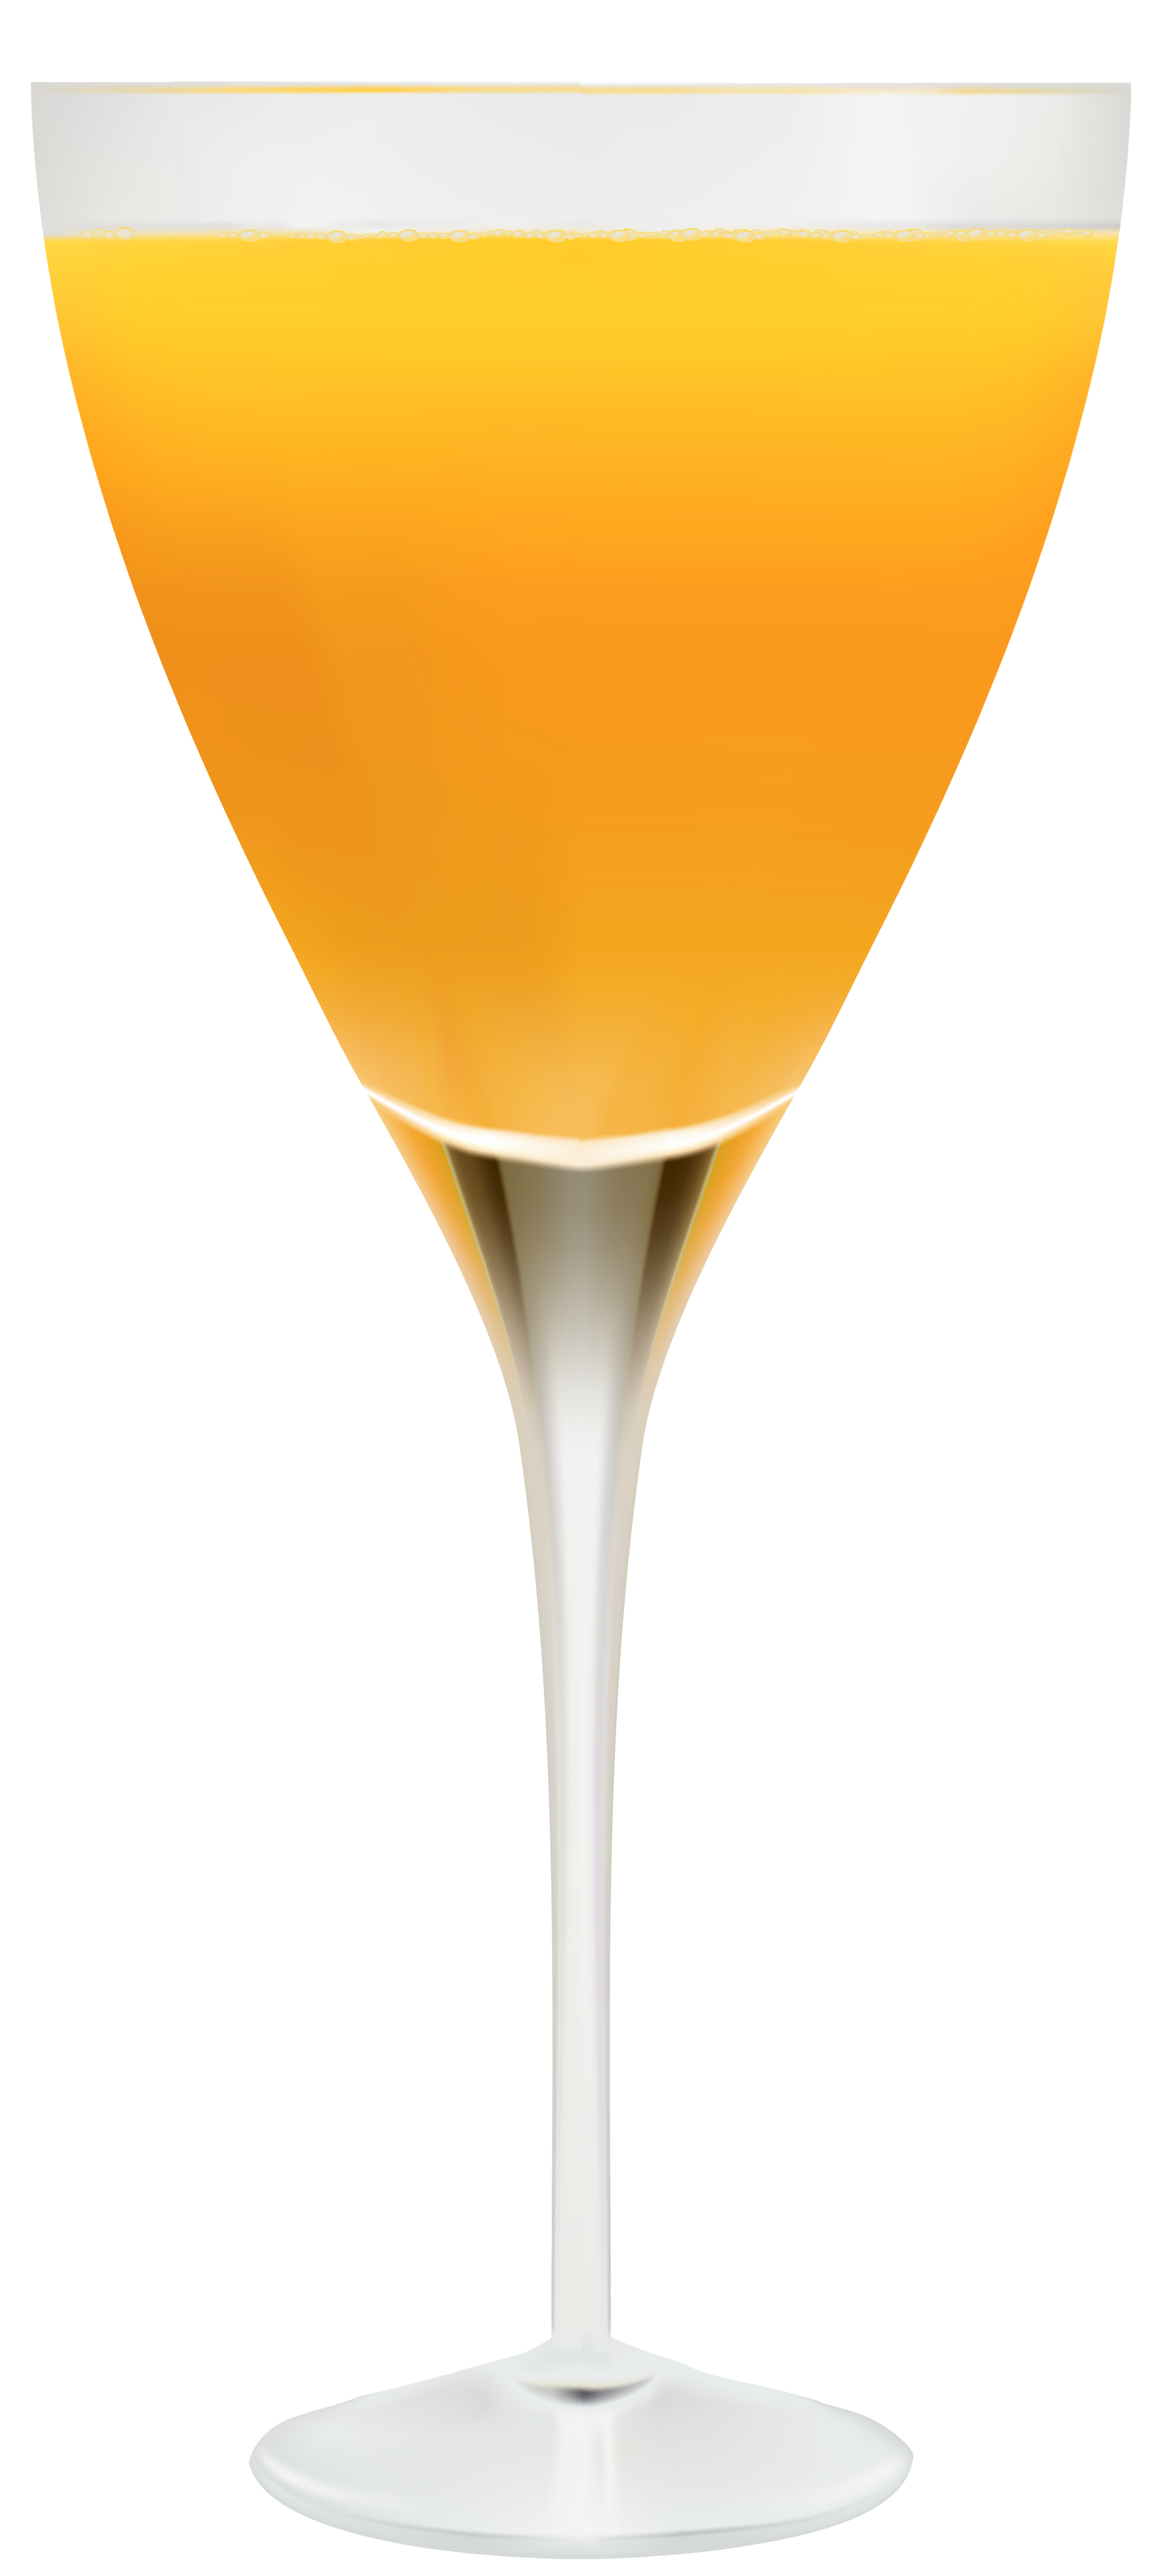 Drink png image. Juice transparent pictures free